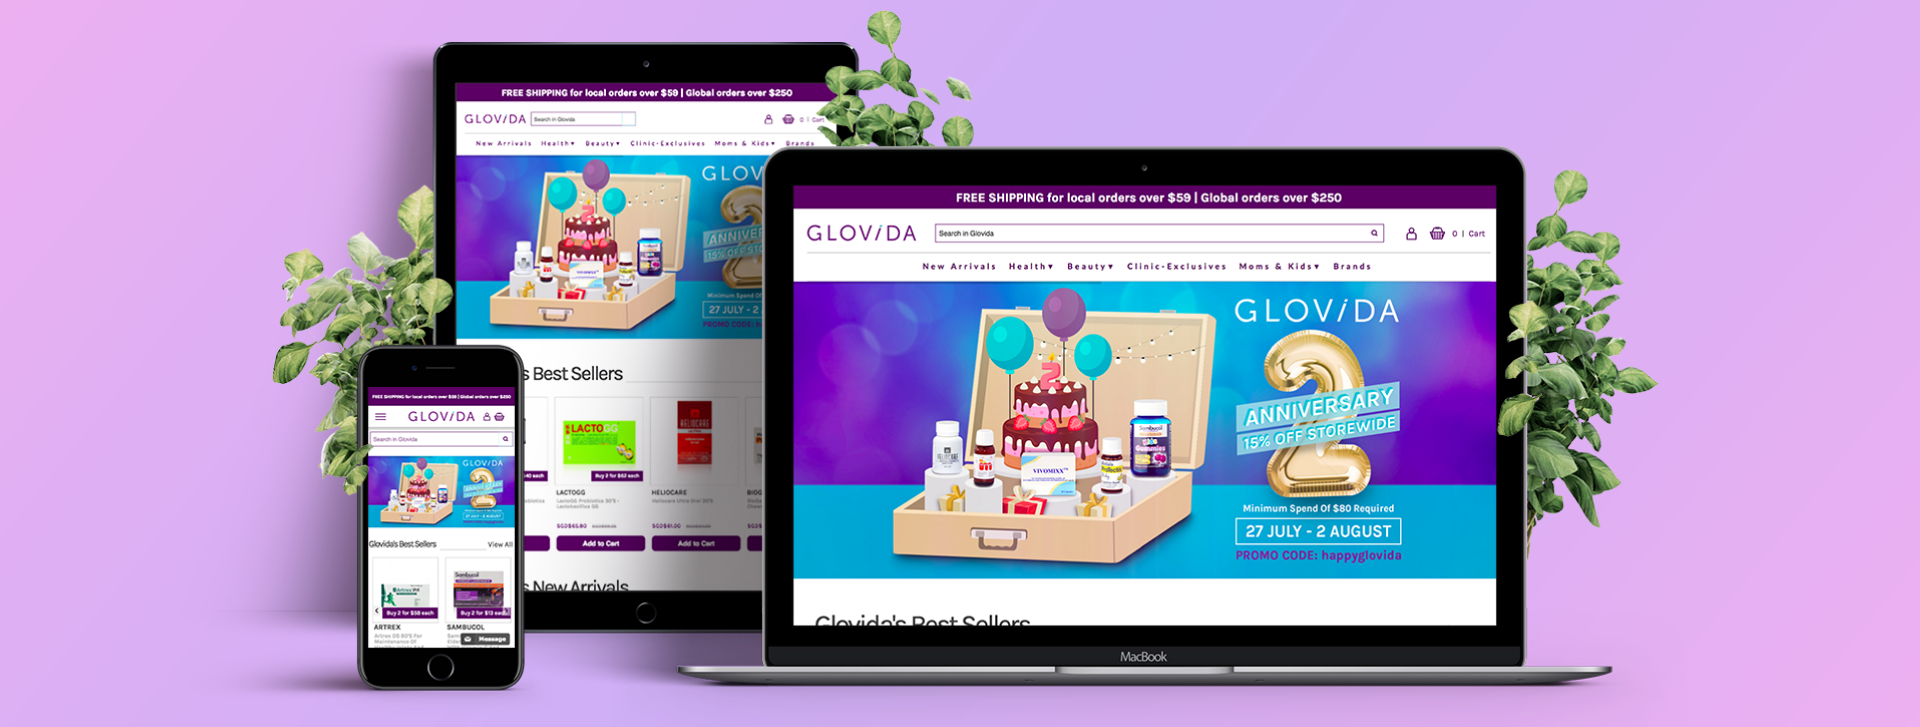 glovida-slider